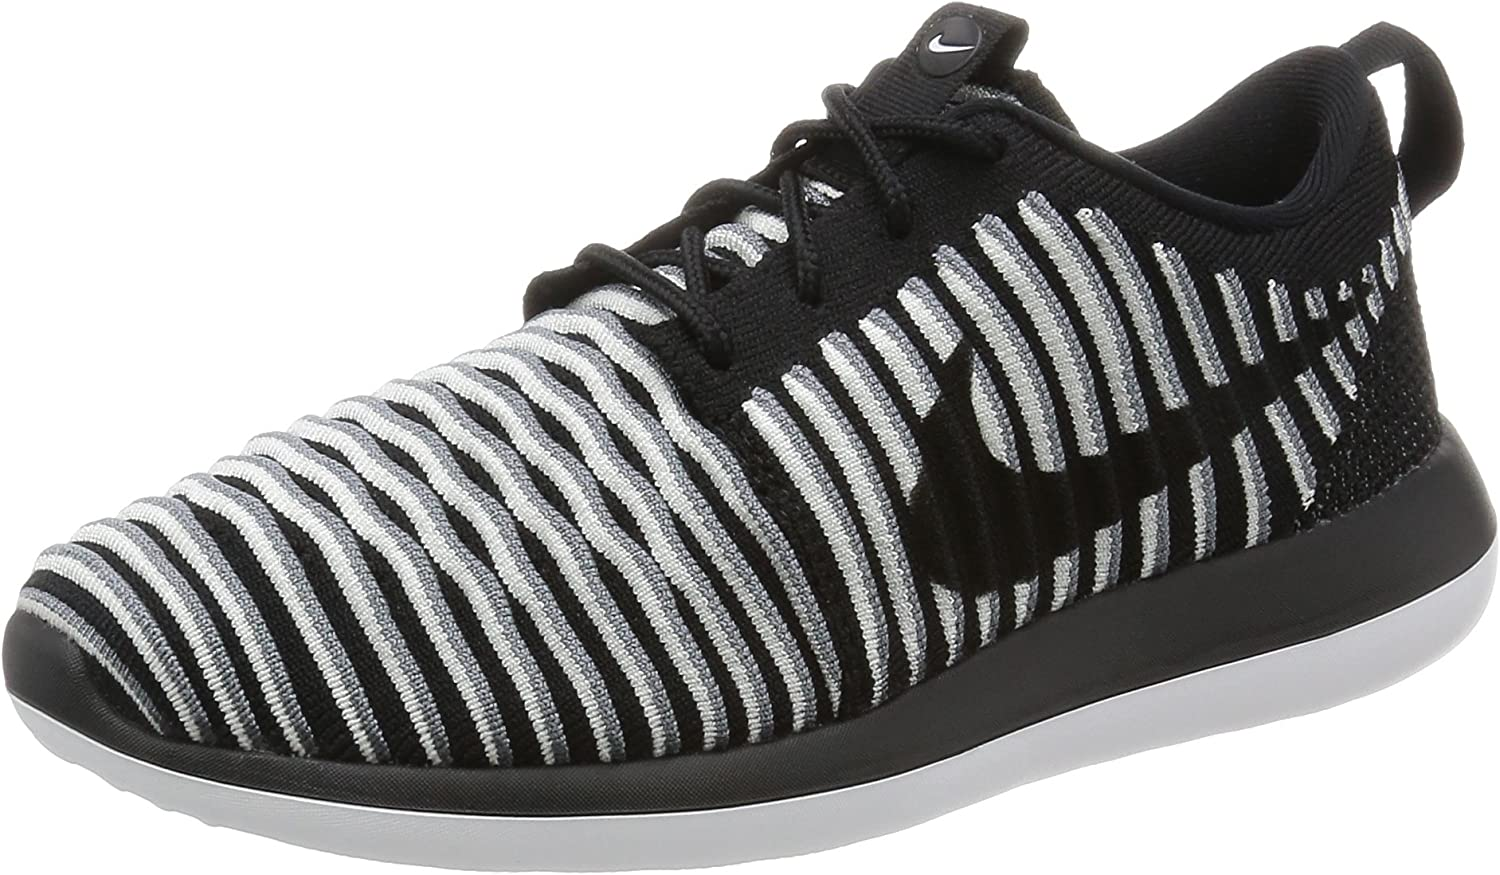 Nike W Roshe Two Flyknit, Chaussures de Running Entrainement Femme